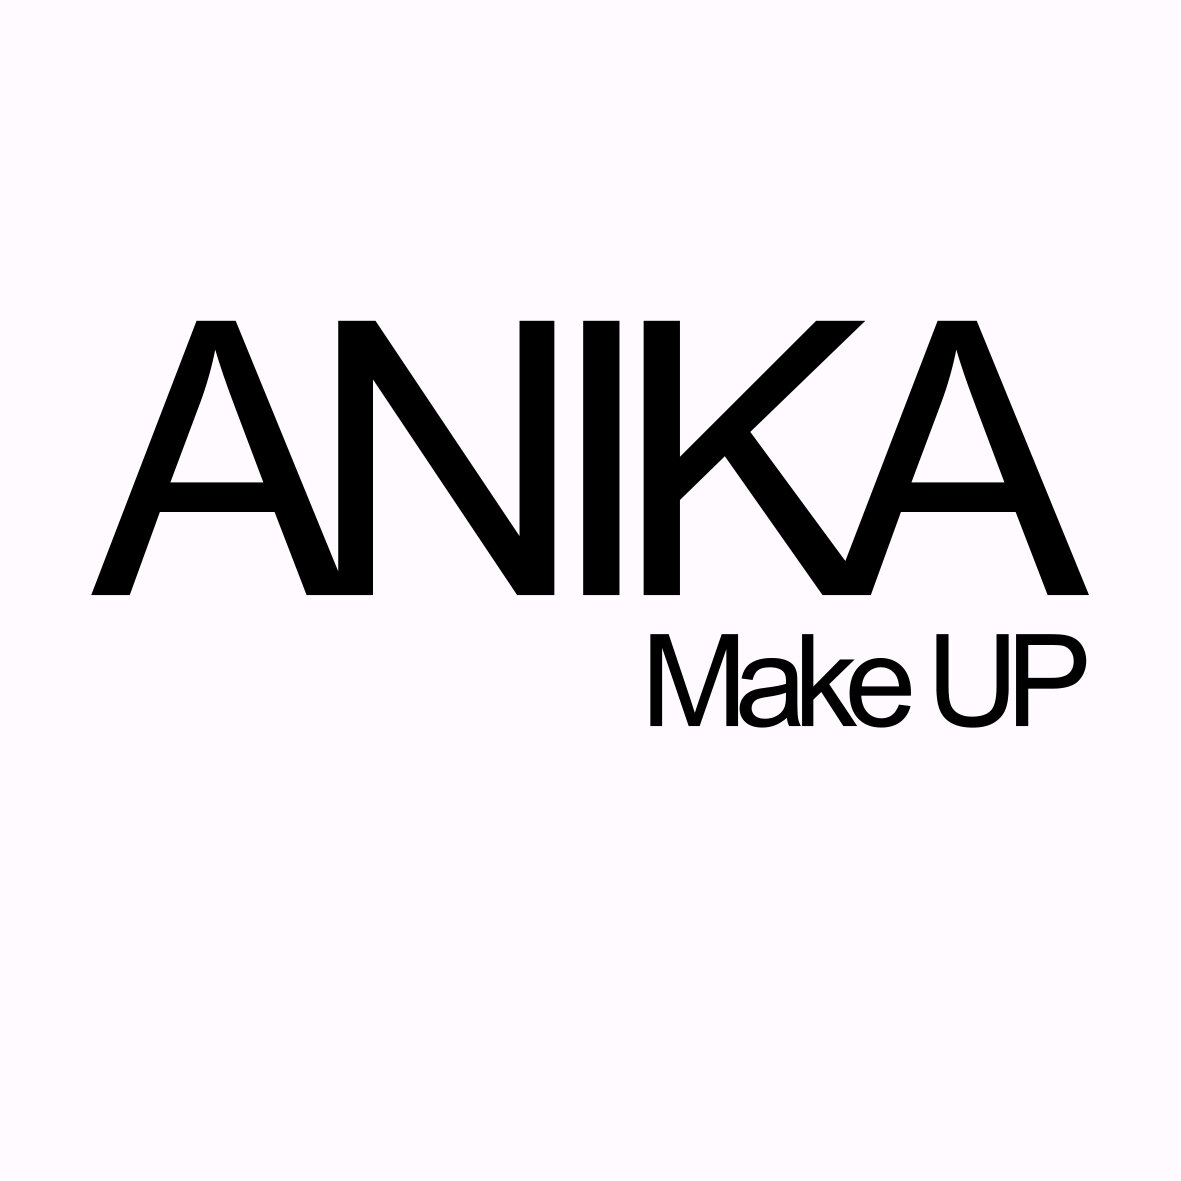 logo-Anika-Make-Up.jpg